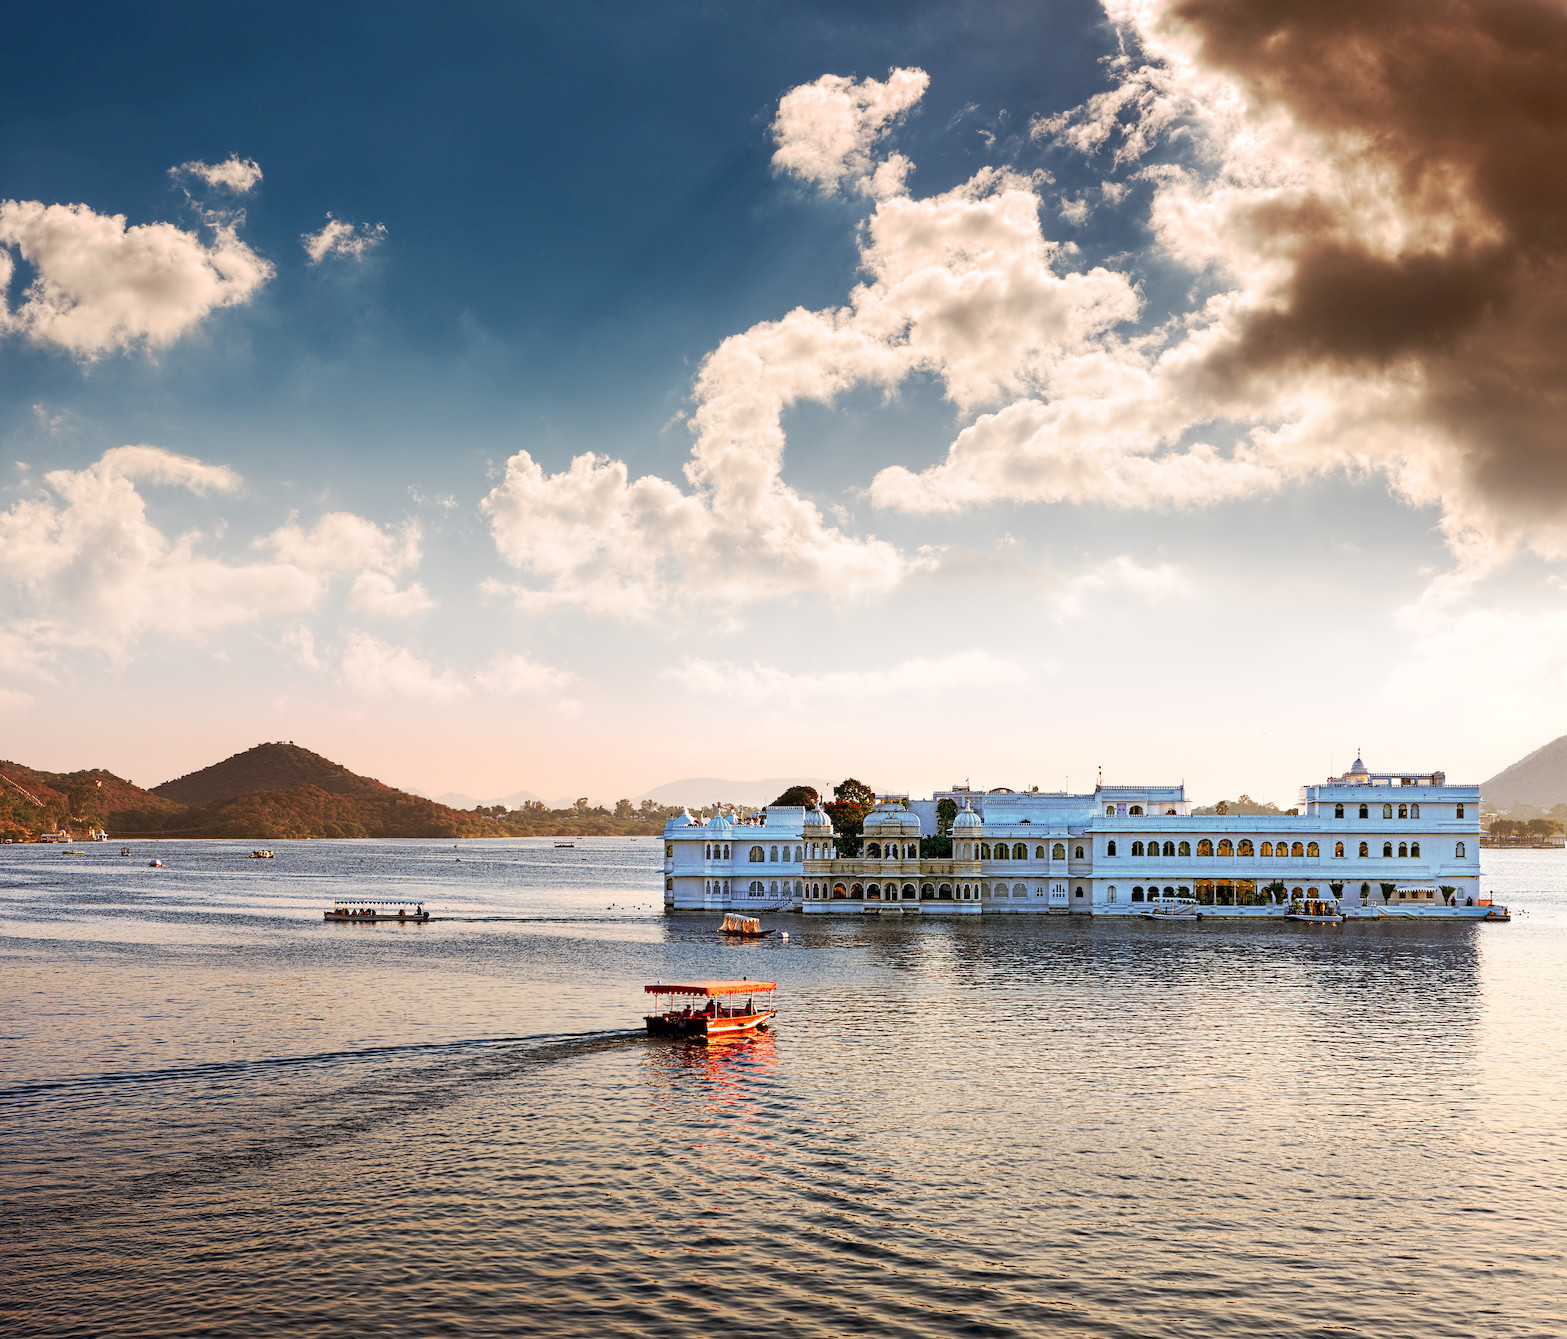 ESY-037449048 Taj Lake Palace. Taj Lake Palace, Udaipur (India)